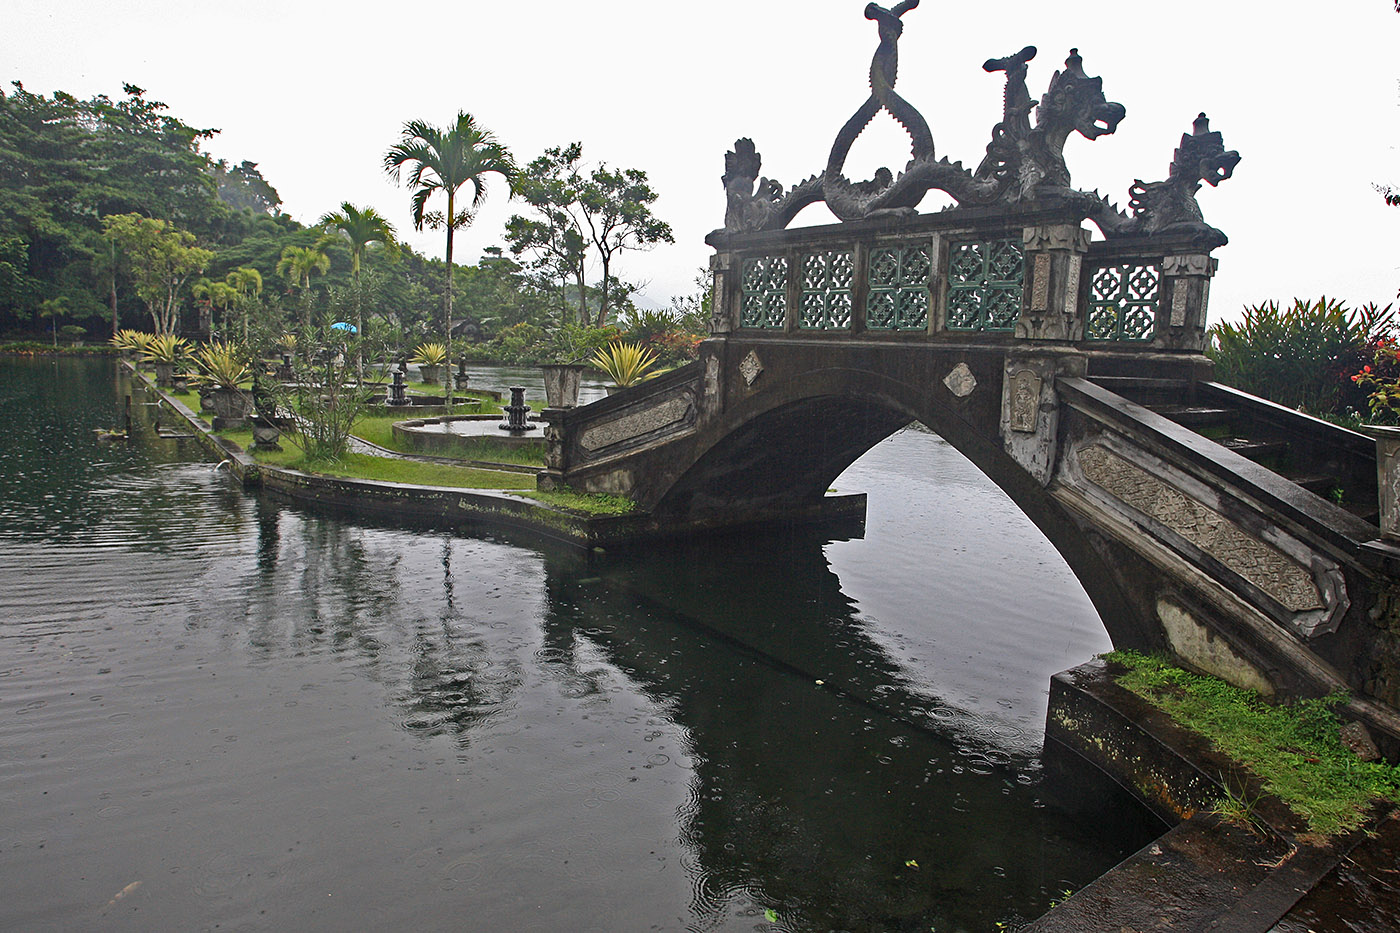 Tirta Gangga Bridge